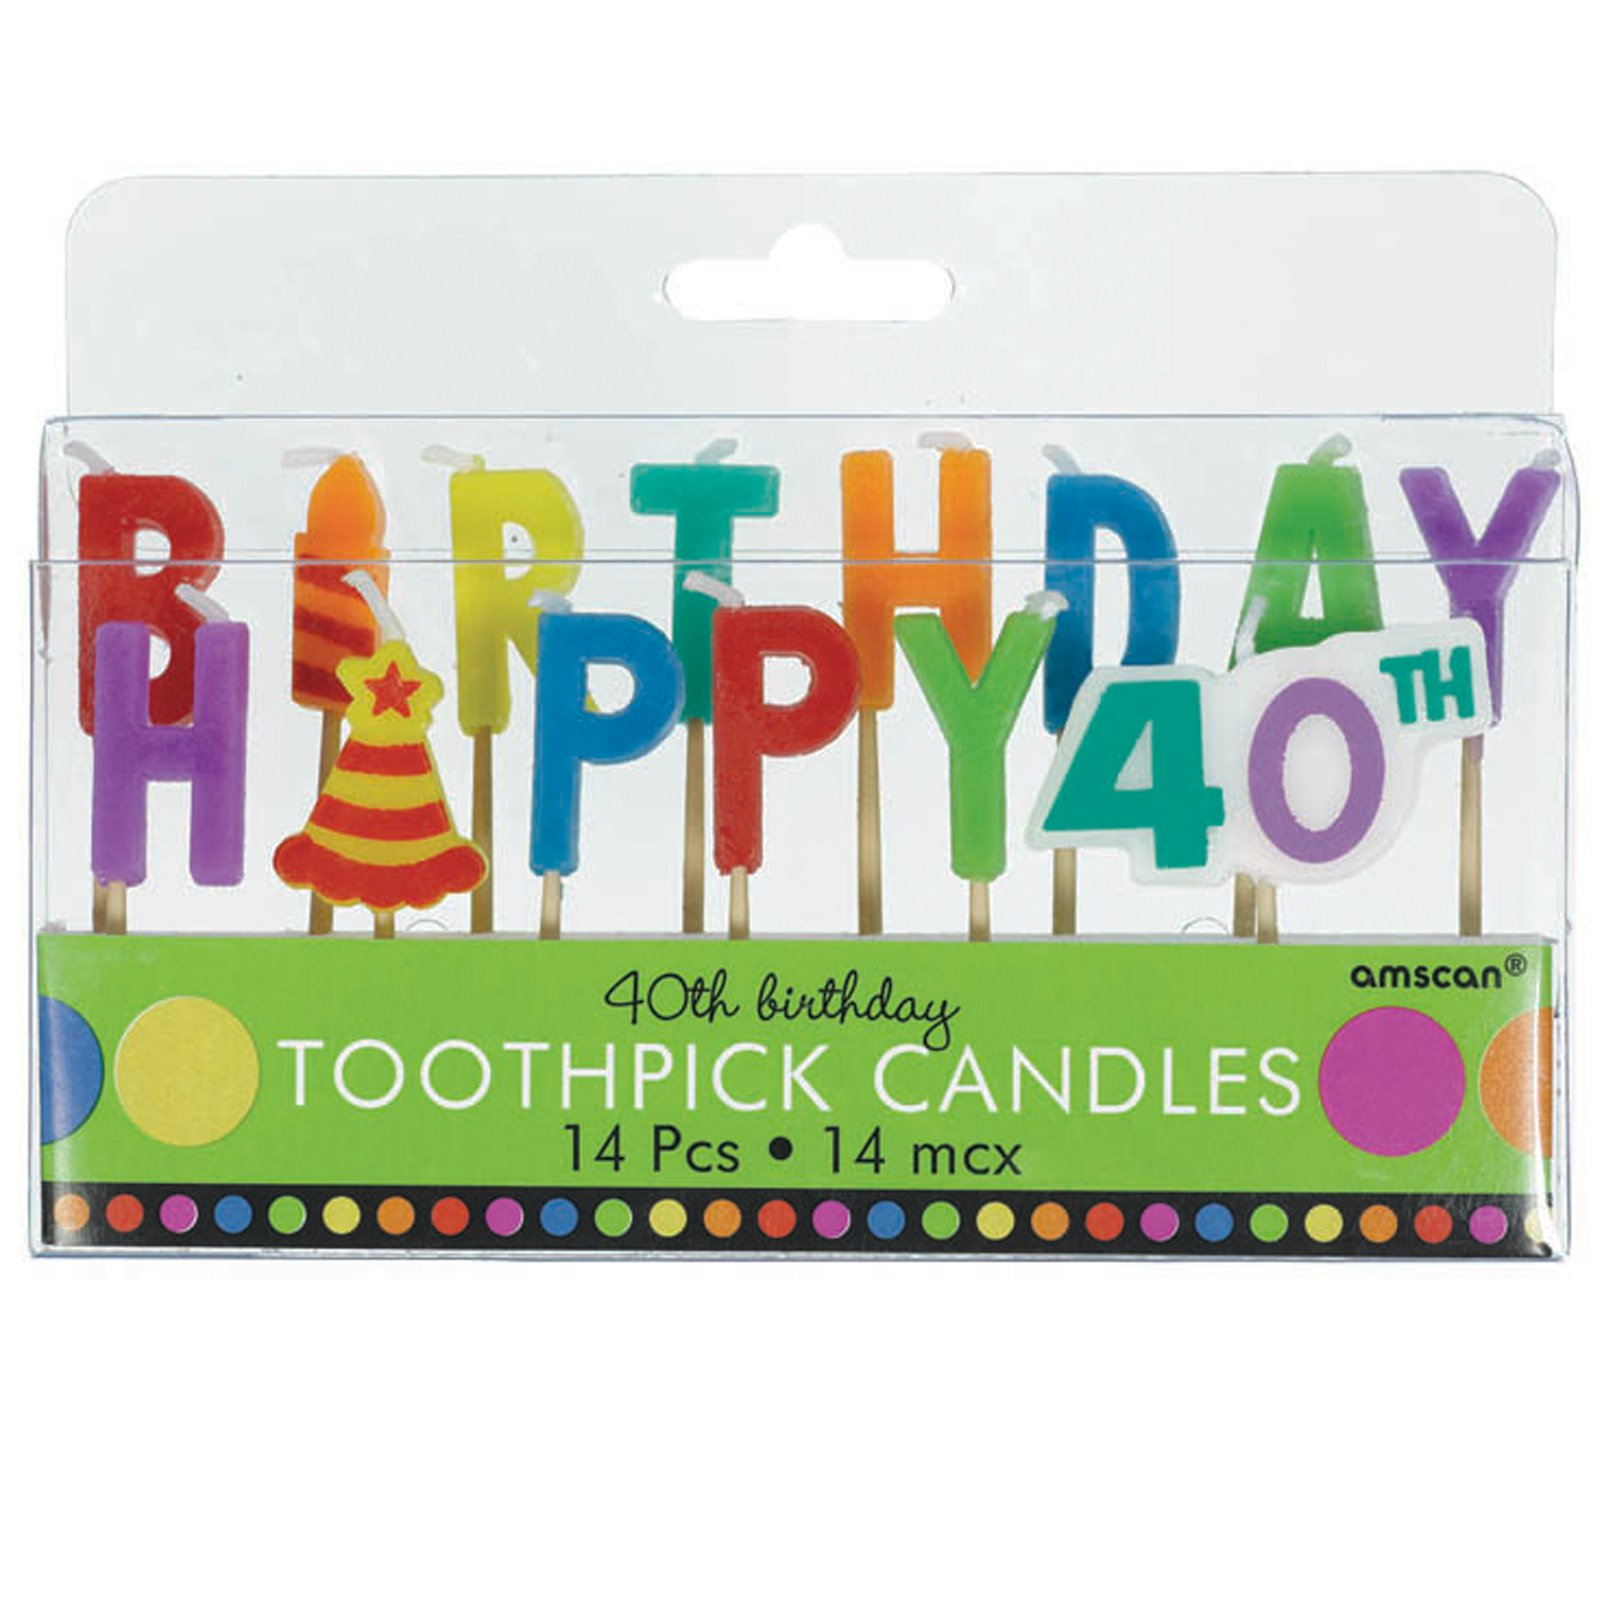 40th Birthday Toothpick Candles (14 count)